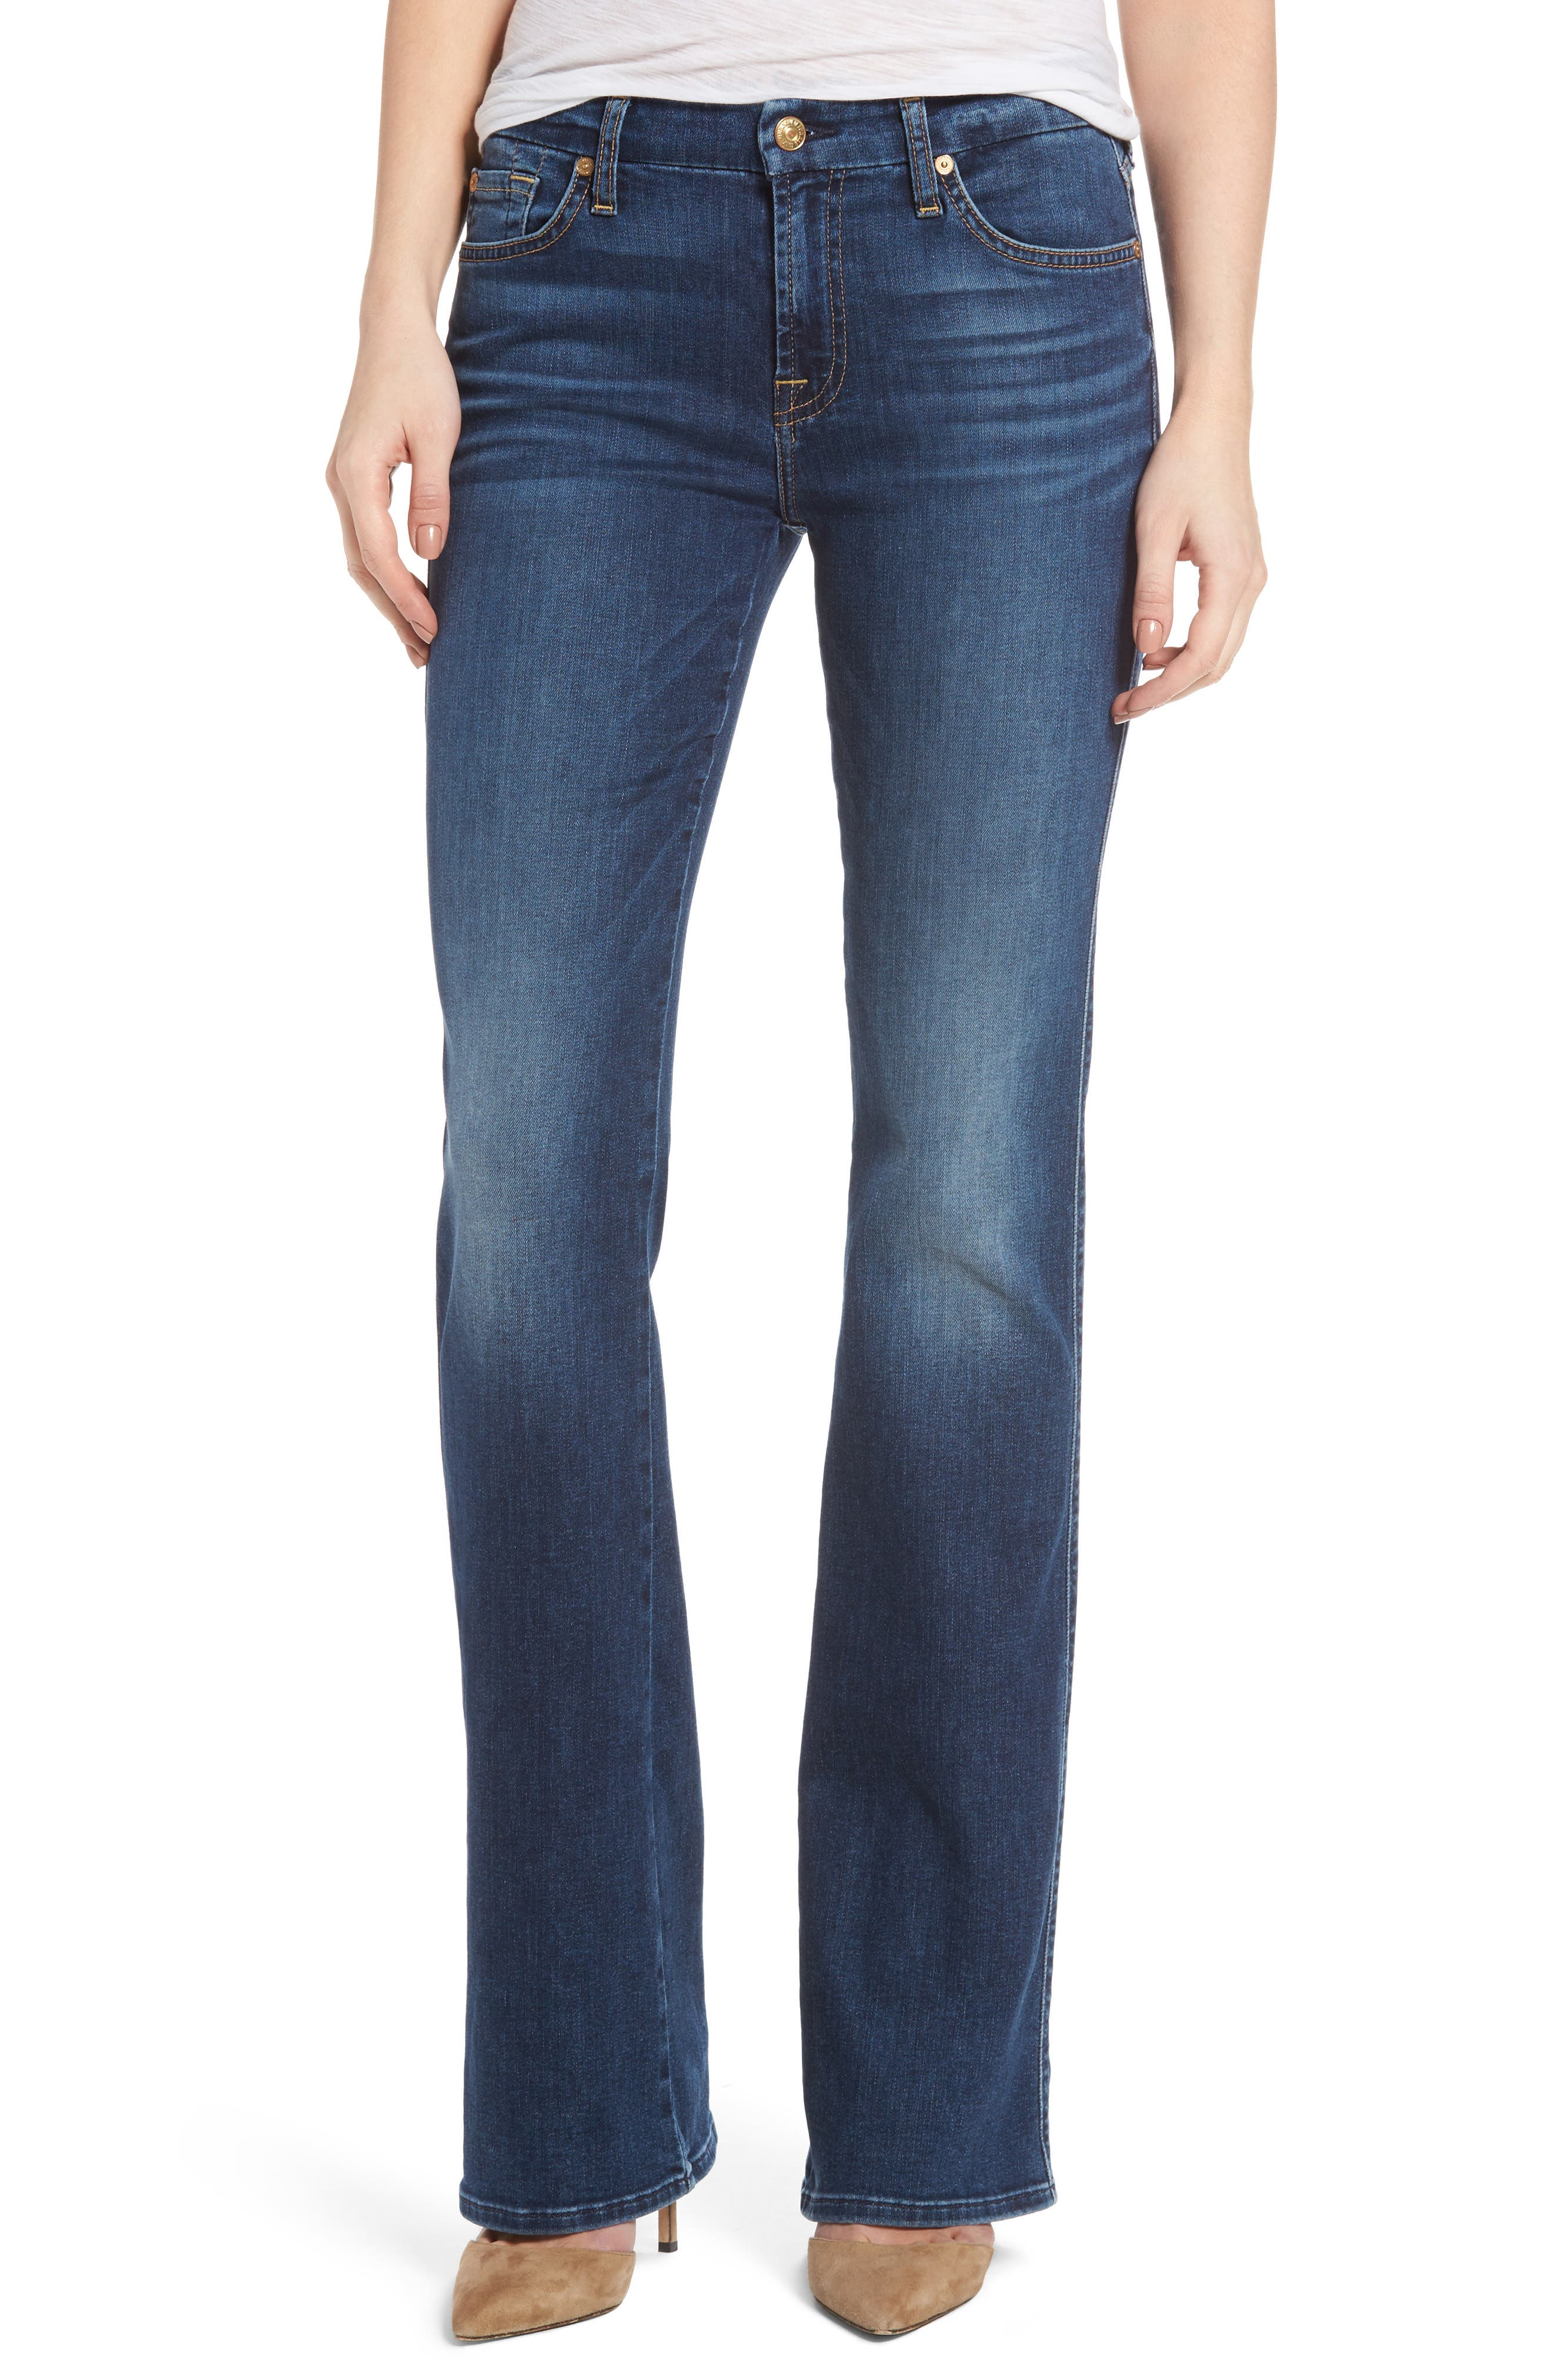 Alternate Image 1 Selected - 7 For All Mankind® Kimmie Bootcut Jeans (Stunning Bleeker)